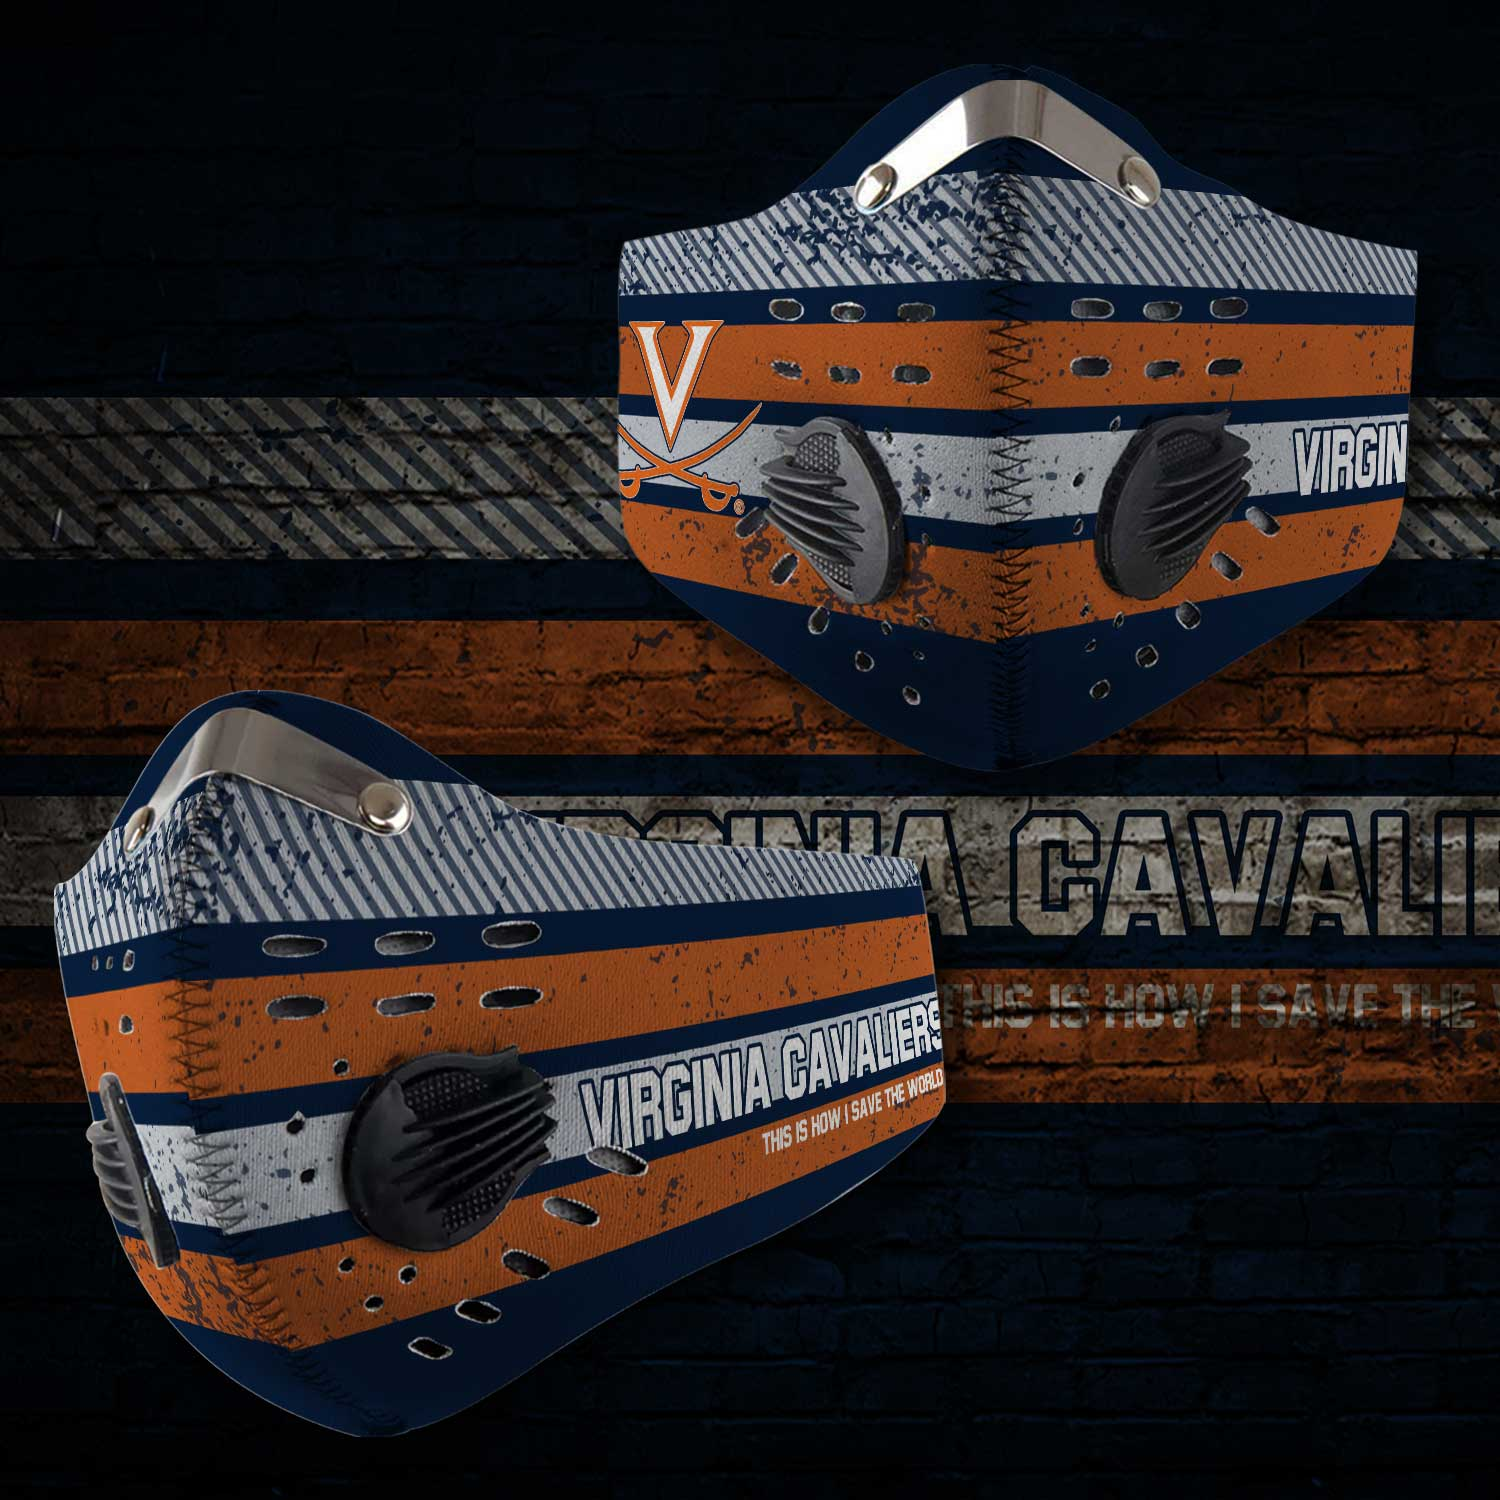 Virginia cavaliers this is how i save the world carbon filter face mask 1